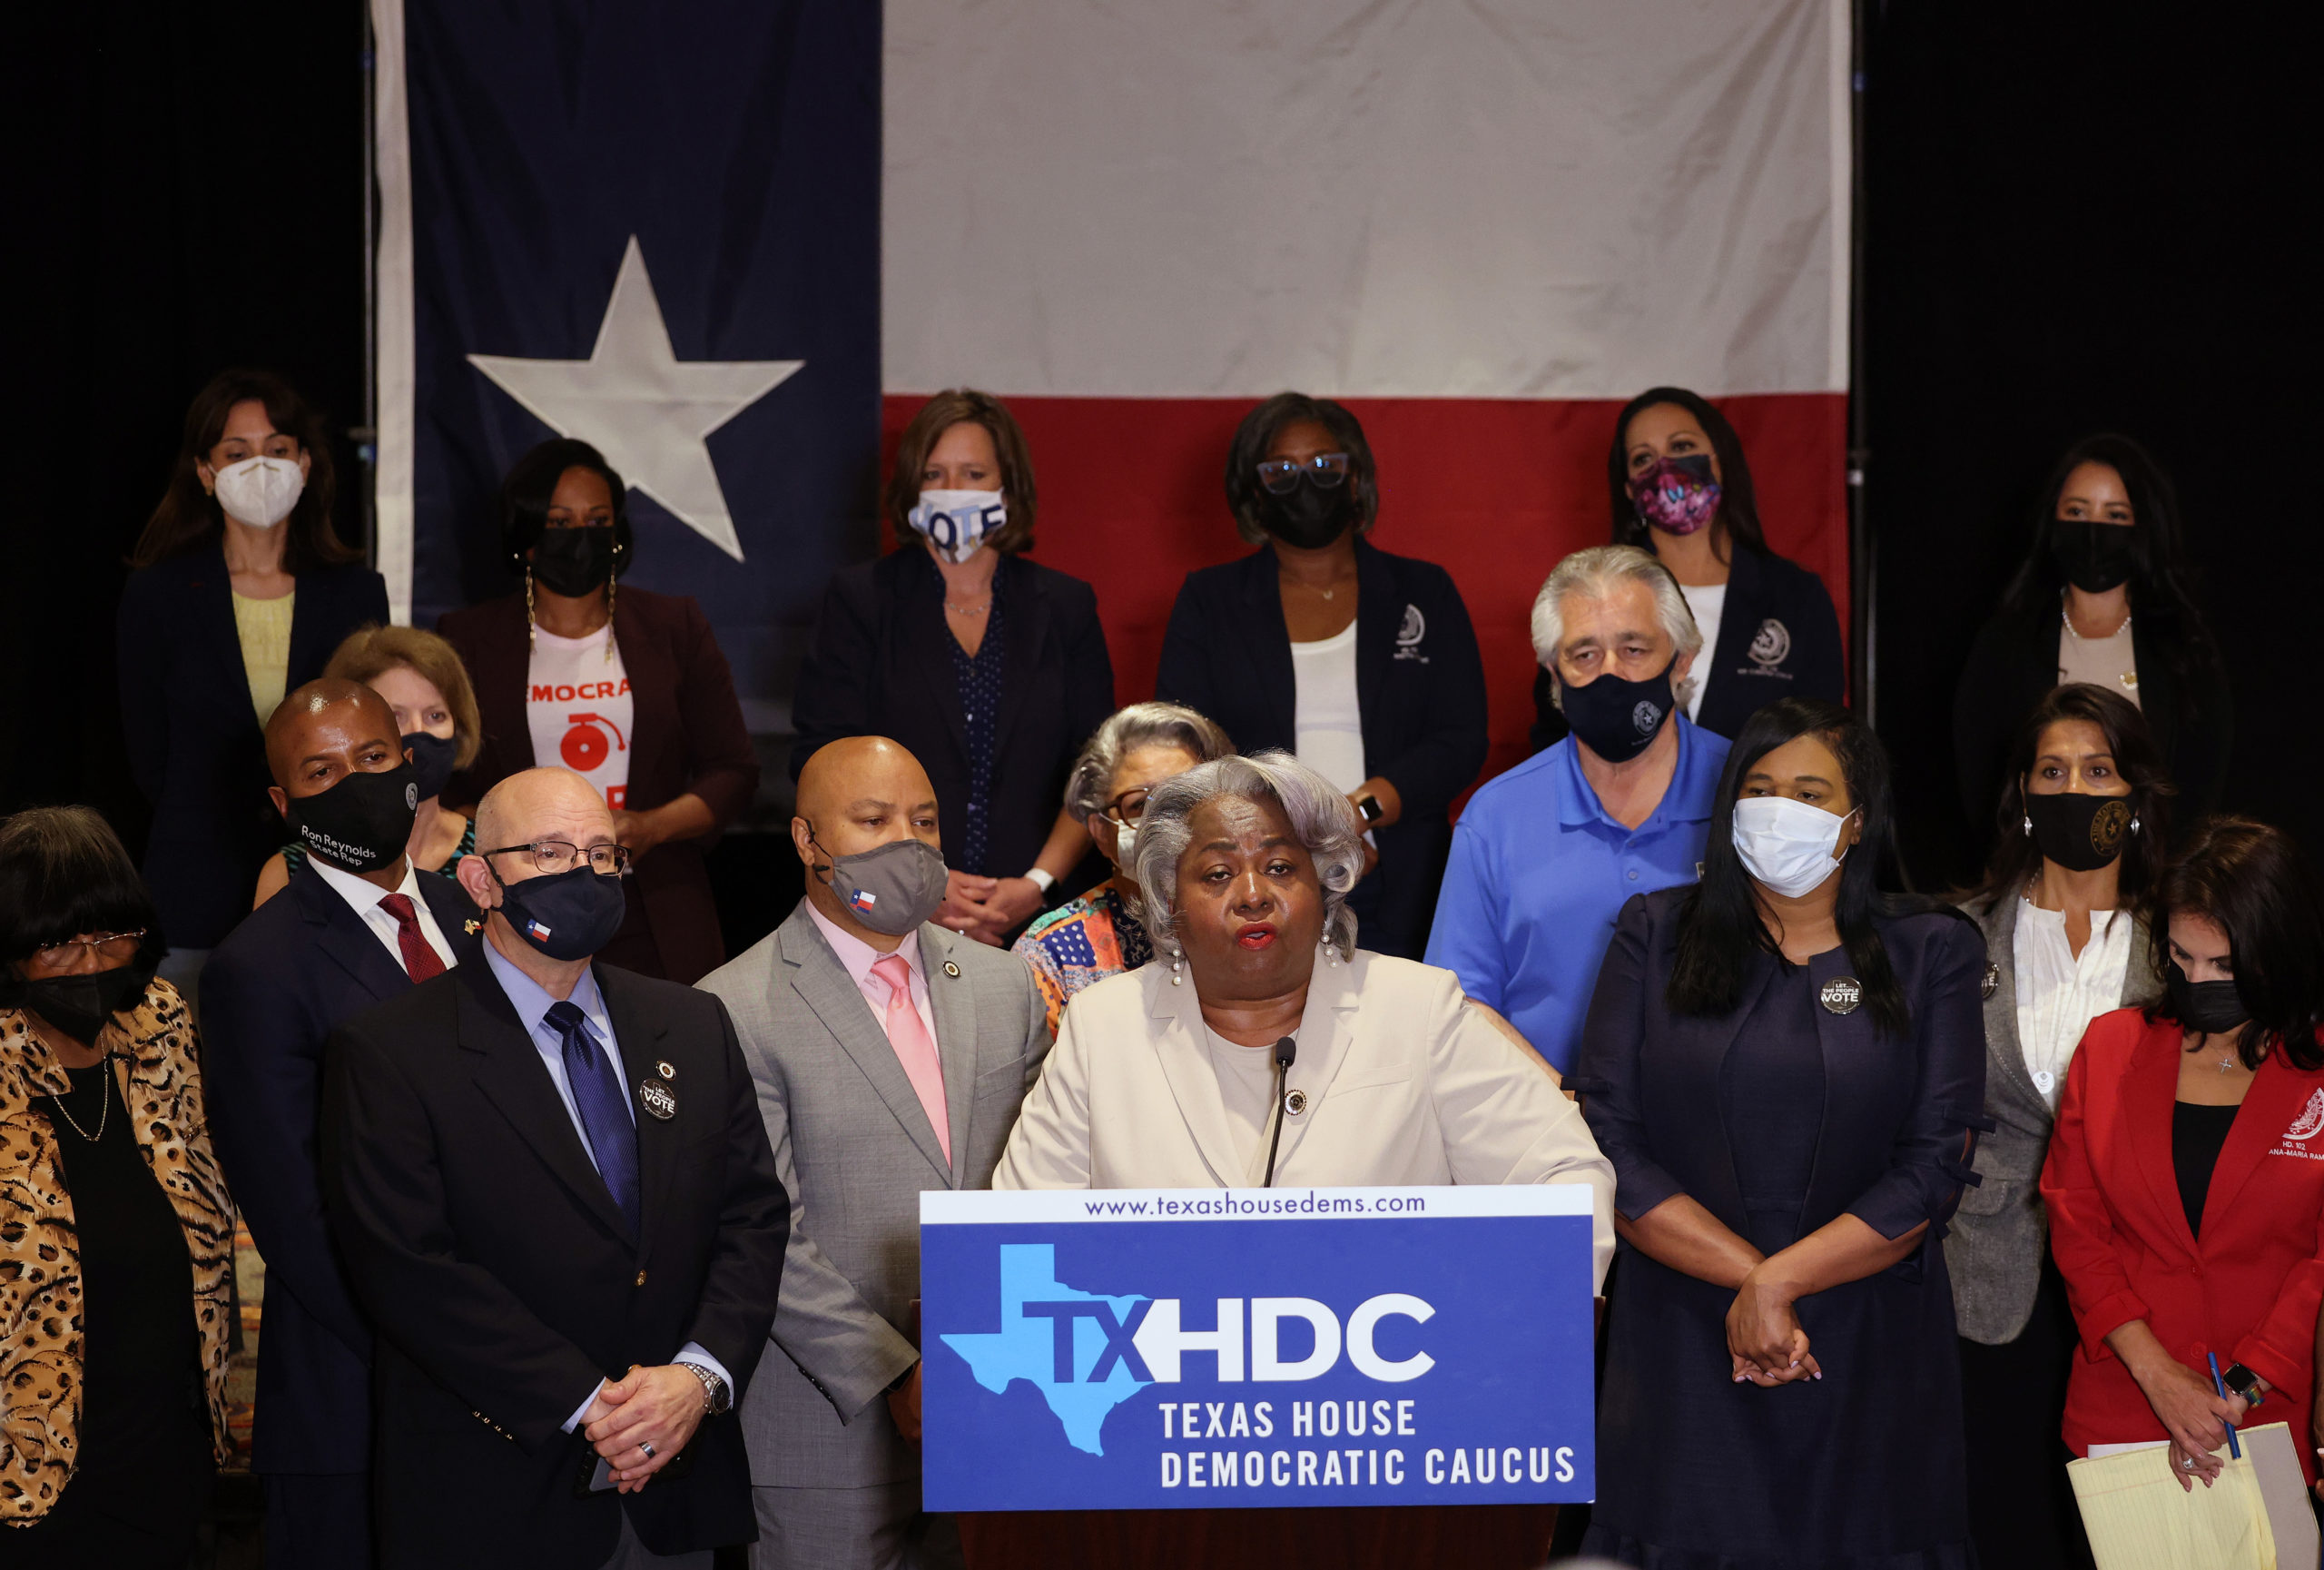 WASHINGTON, DC - JULY 20: Texas State Rep. Barbara Gervin-Hawkins (D-120), joined by fellow Democratic Texas state representatives, speaks at a press conference on Texas Gov. Greg Abbott and the group's meetings with federal lawmakers on voting rights, on July 20, 2021 in Washington, DC. Members of the Texas House Democratic Caucus continue to lobby for voting rights reform in Washington, DC after leaving Texas to block a voting restrictions bill by denying a Republican quorum. (Photo by Kevin Dietsch/Getty Images)